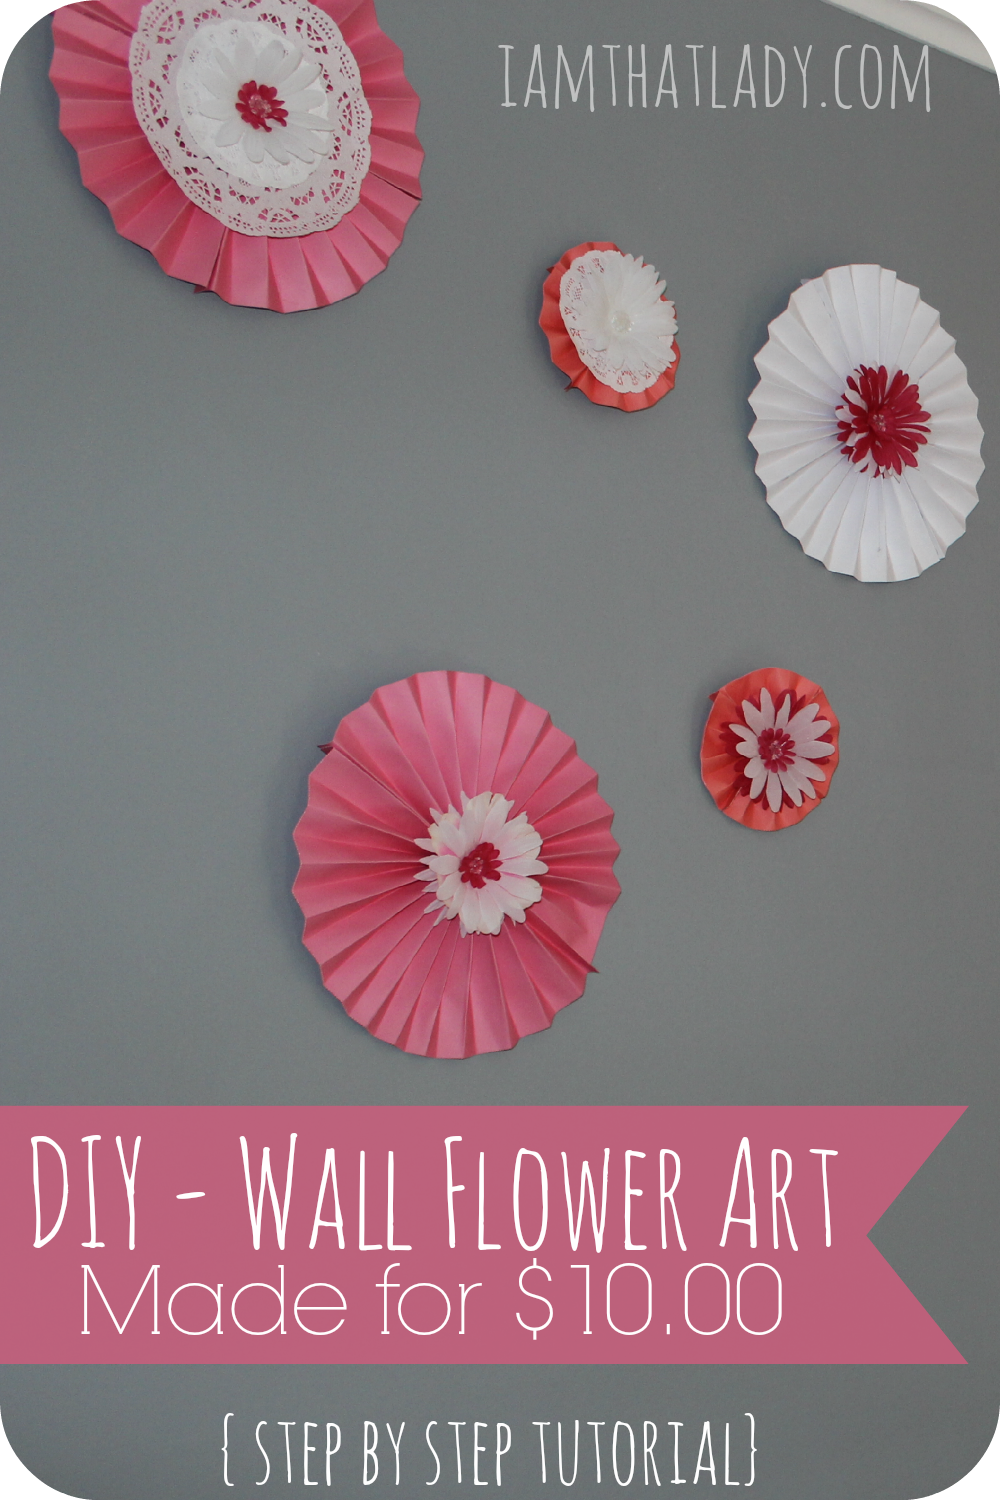 Are you looking for an inexpensive way to spruce up a wall in your home? These DIY Wall Flowers are made from scrapbook paper and are super fun to create! Here is the tutorial!